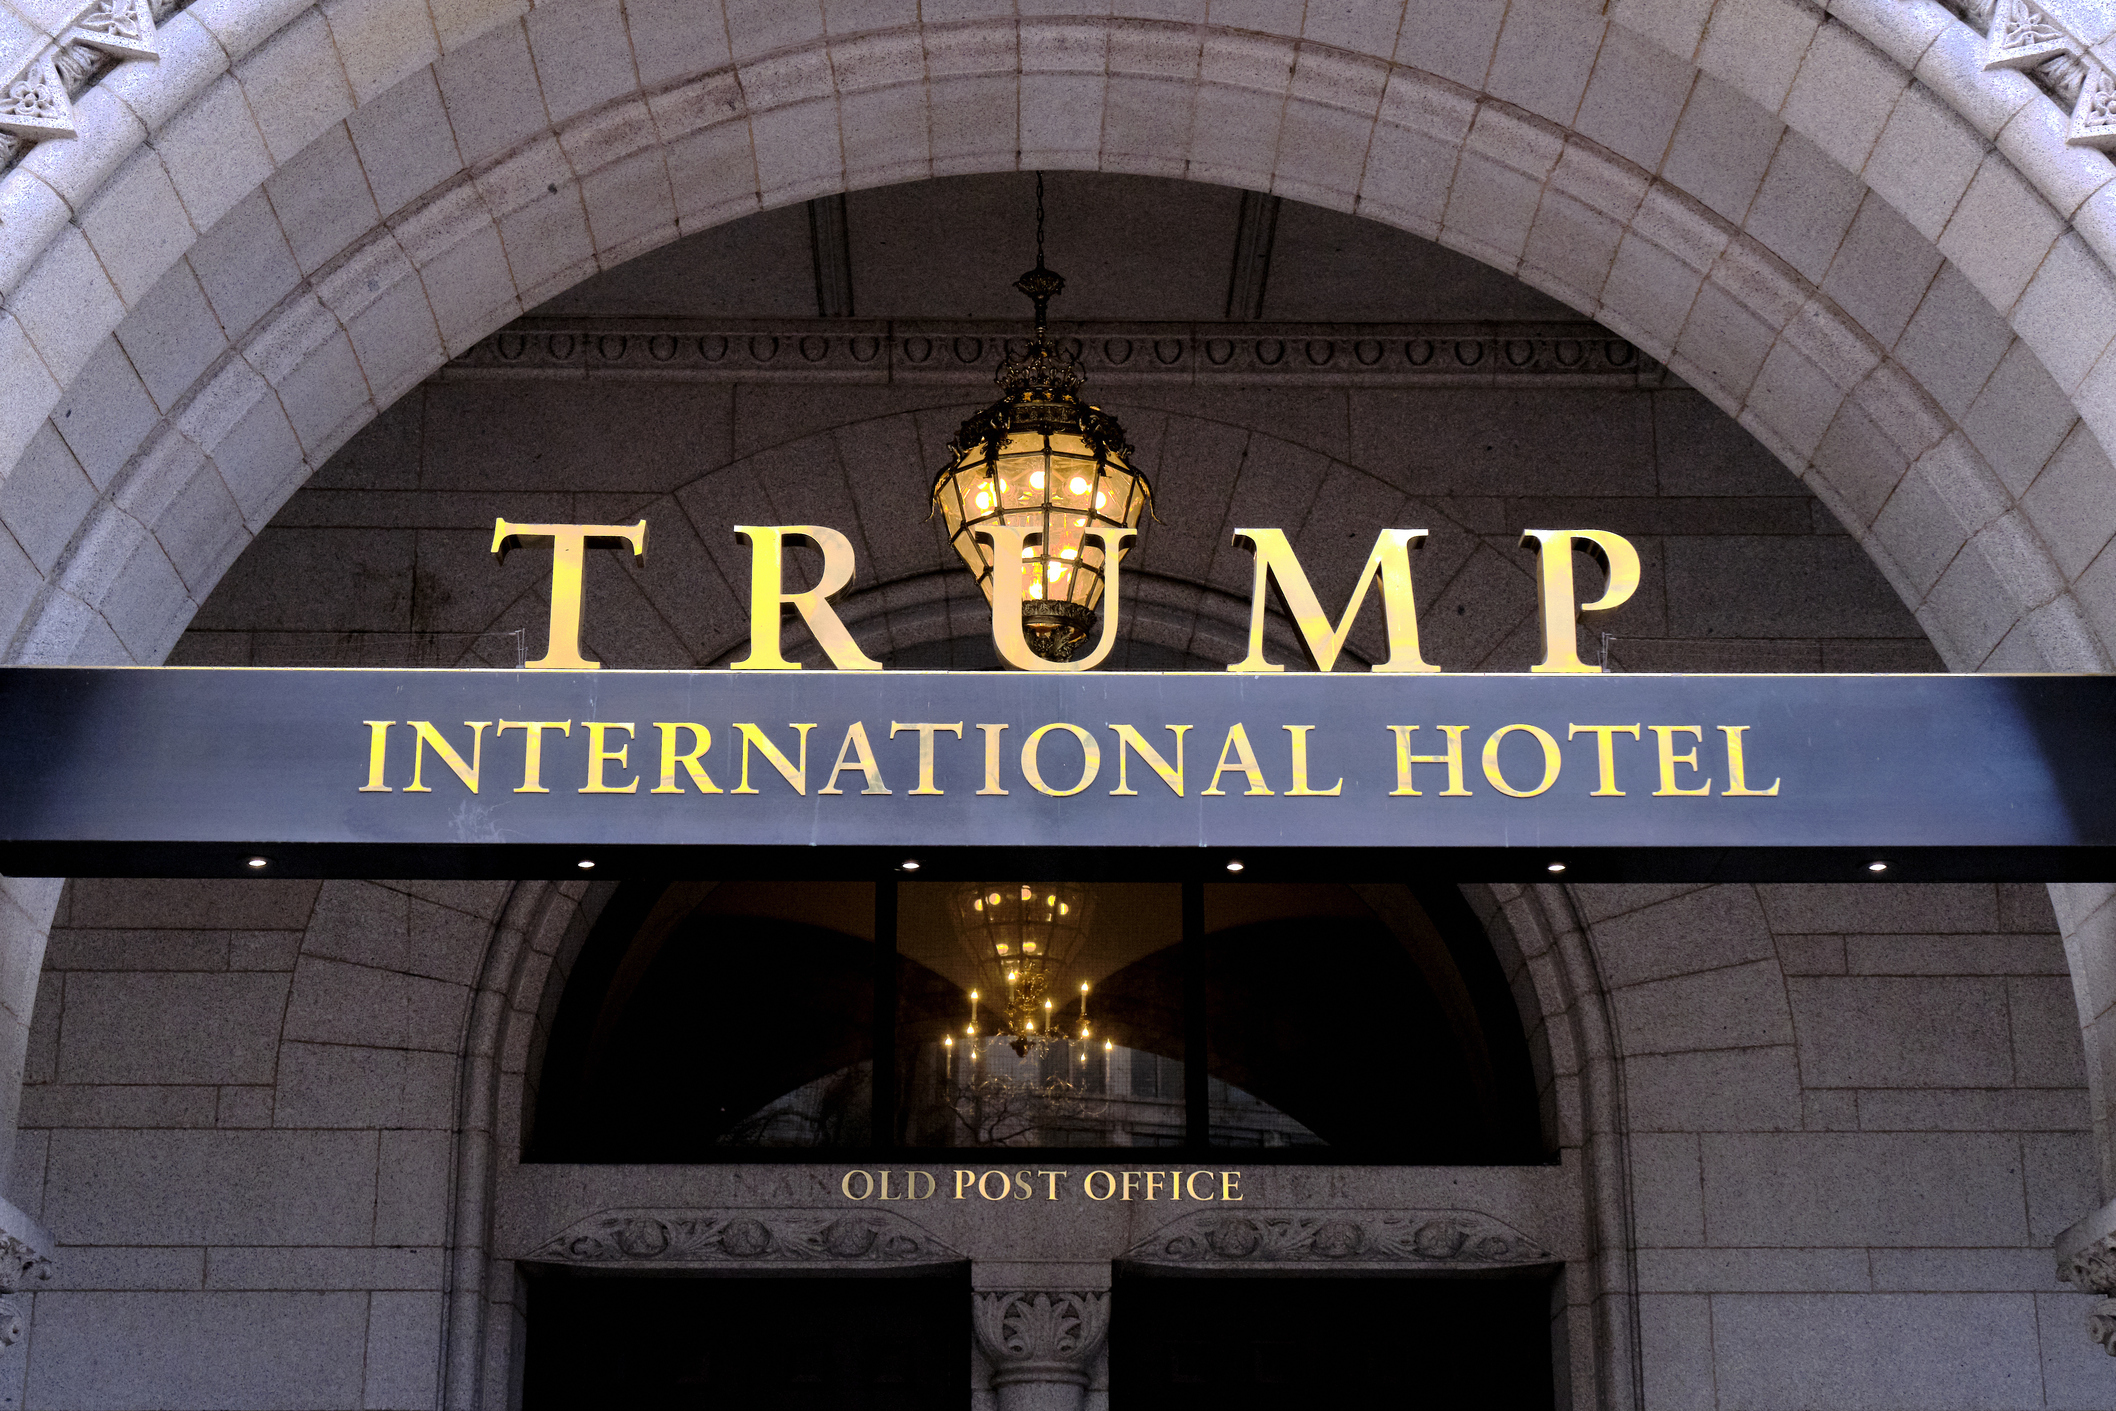 This March 11, 2019 file photo, shows the north entrance of the Trump International in Washington. Former President Donald Trump's company lost more than $70 million operating his Washington D.C. hotel while in office, forcing him at one point get a reprieve from a major bank on payments on a loan, according to documents released Friday, Oct. 8, 2021, by a House committee investigating his business. (AP Photo/Mark Tenally, File)